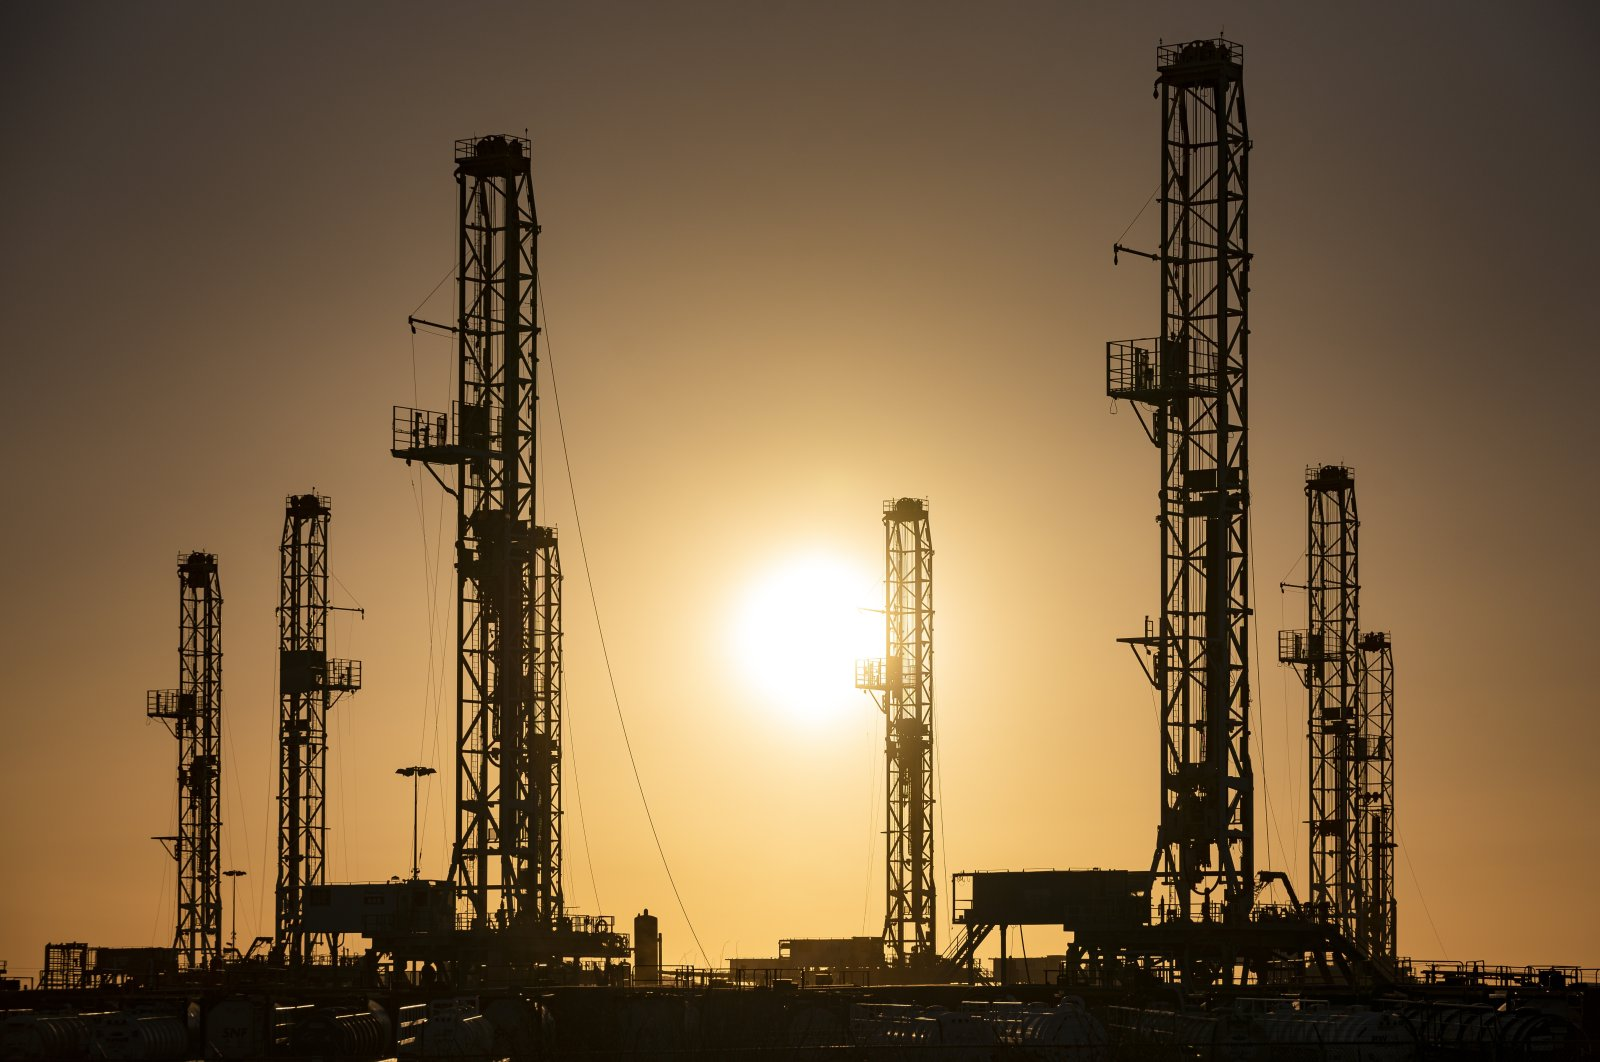 The morning sun rises behind oil rigs sitting in storage at a yard outside of Odessa, Texas, U.S., Feb. 6, 2021. (Odessa American via AP)